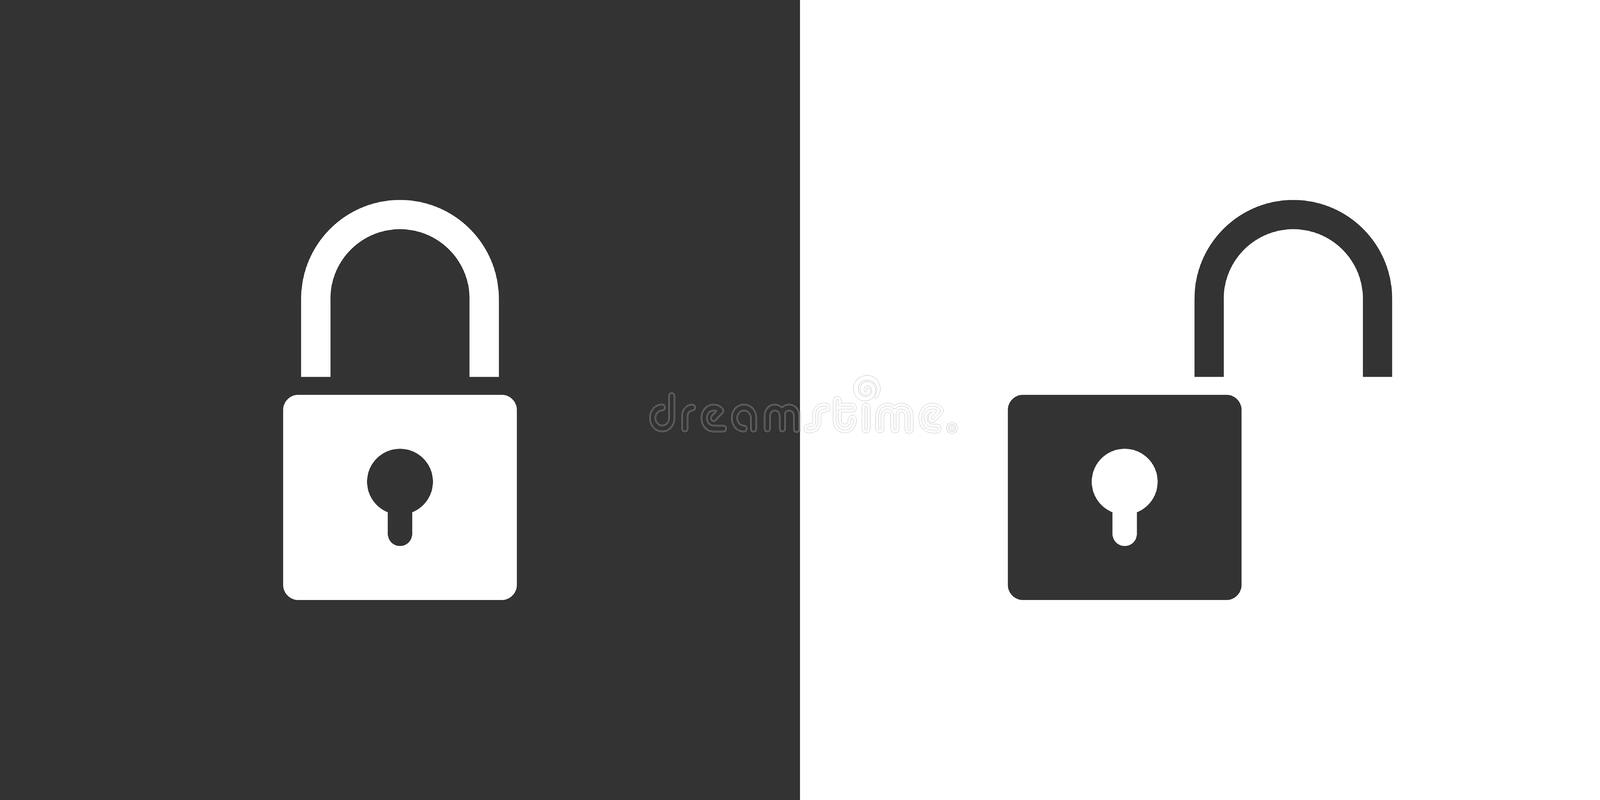 Lock and unlock icon on black and white background royalty free illustration